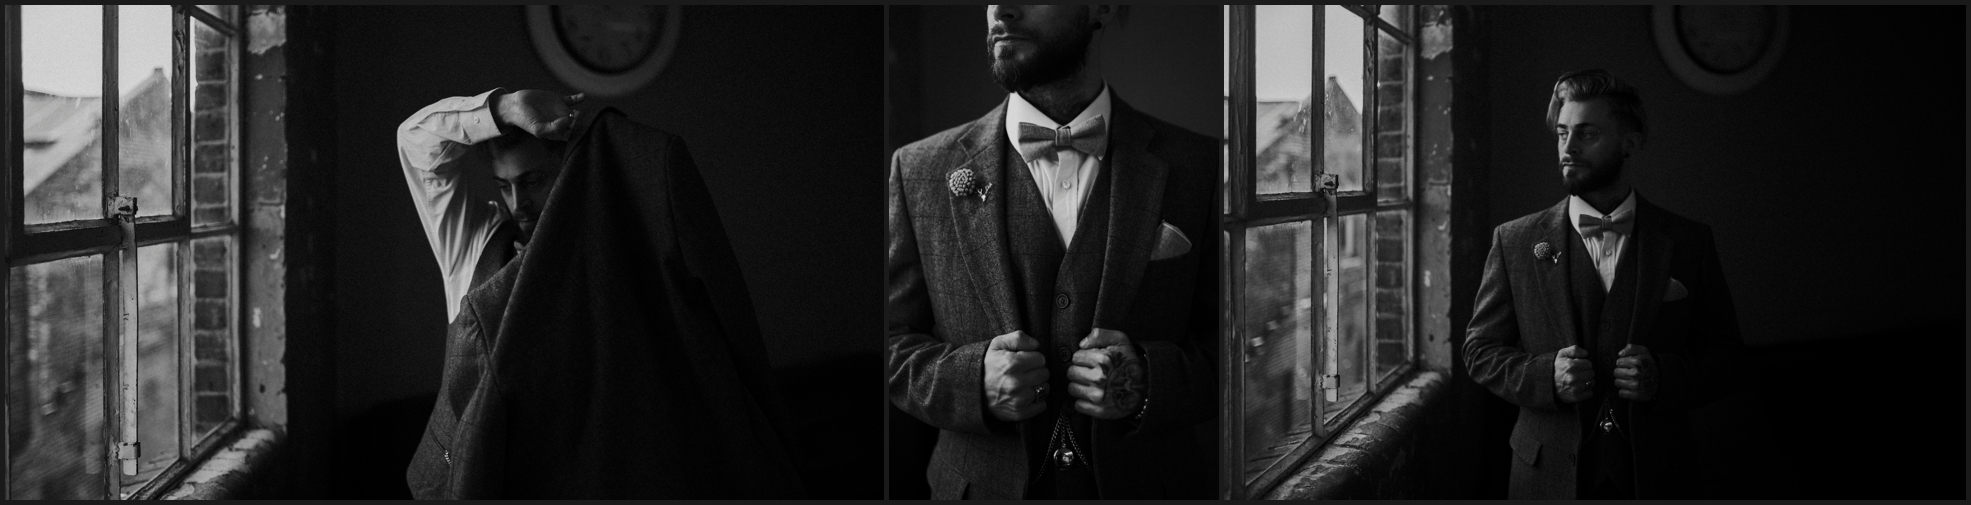 groom, details, suit, steampunk, alternative wedding photographer, pocket watch, black and white